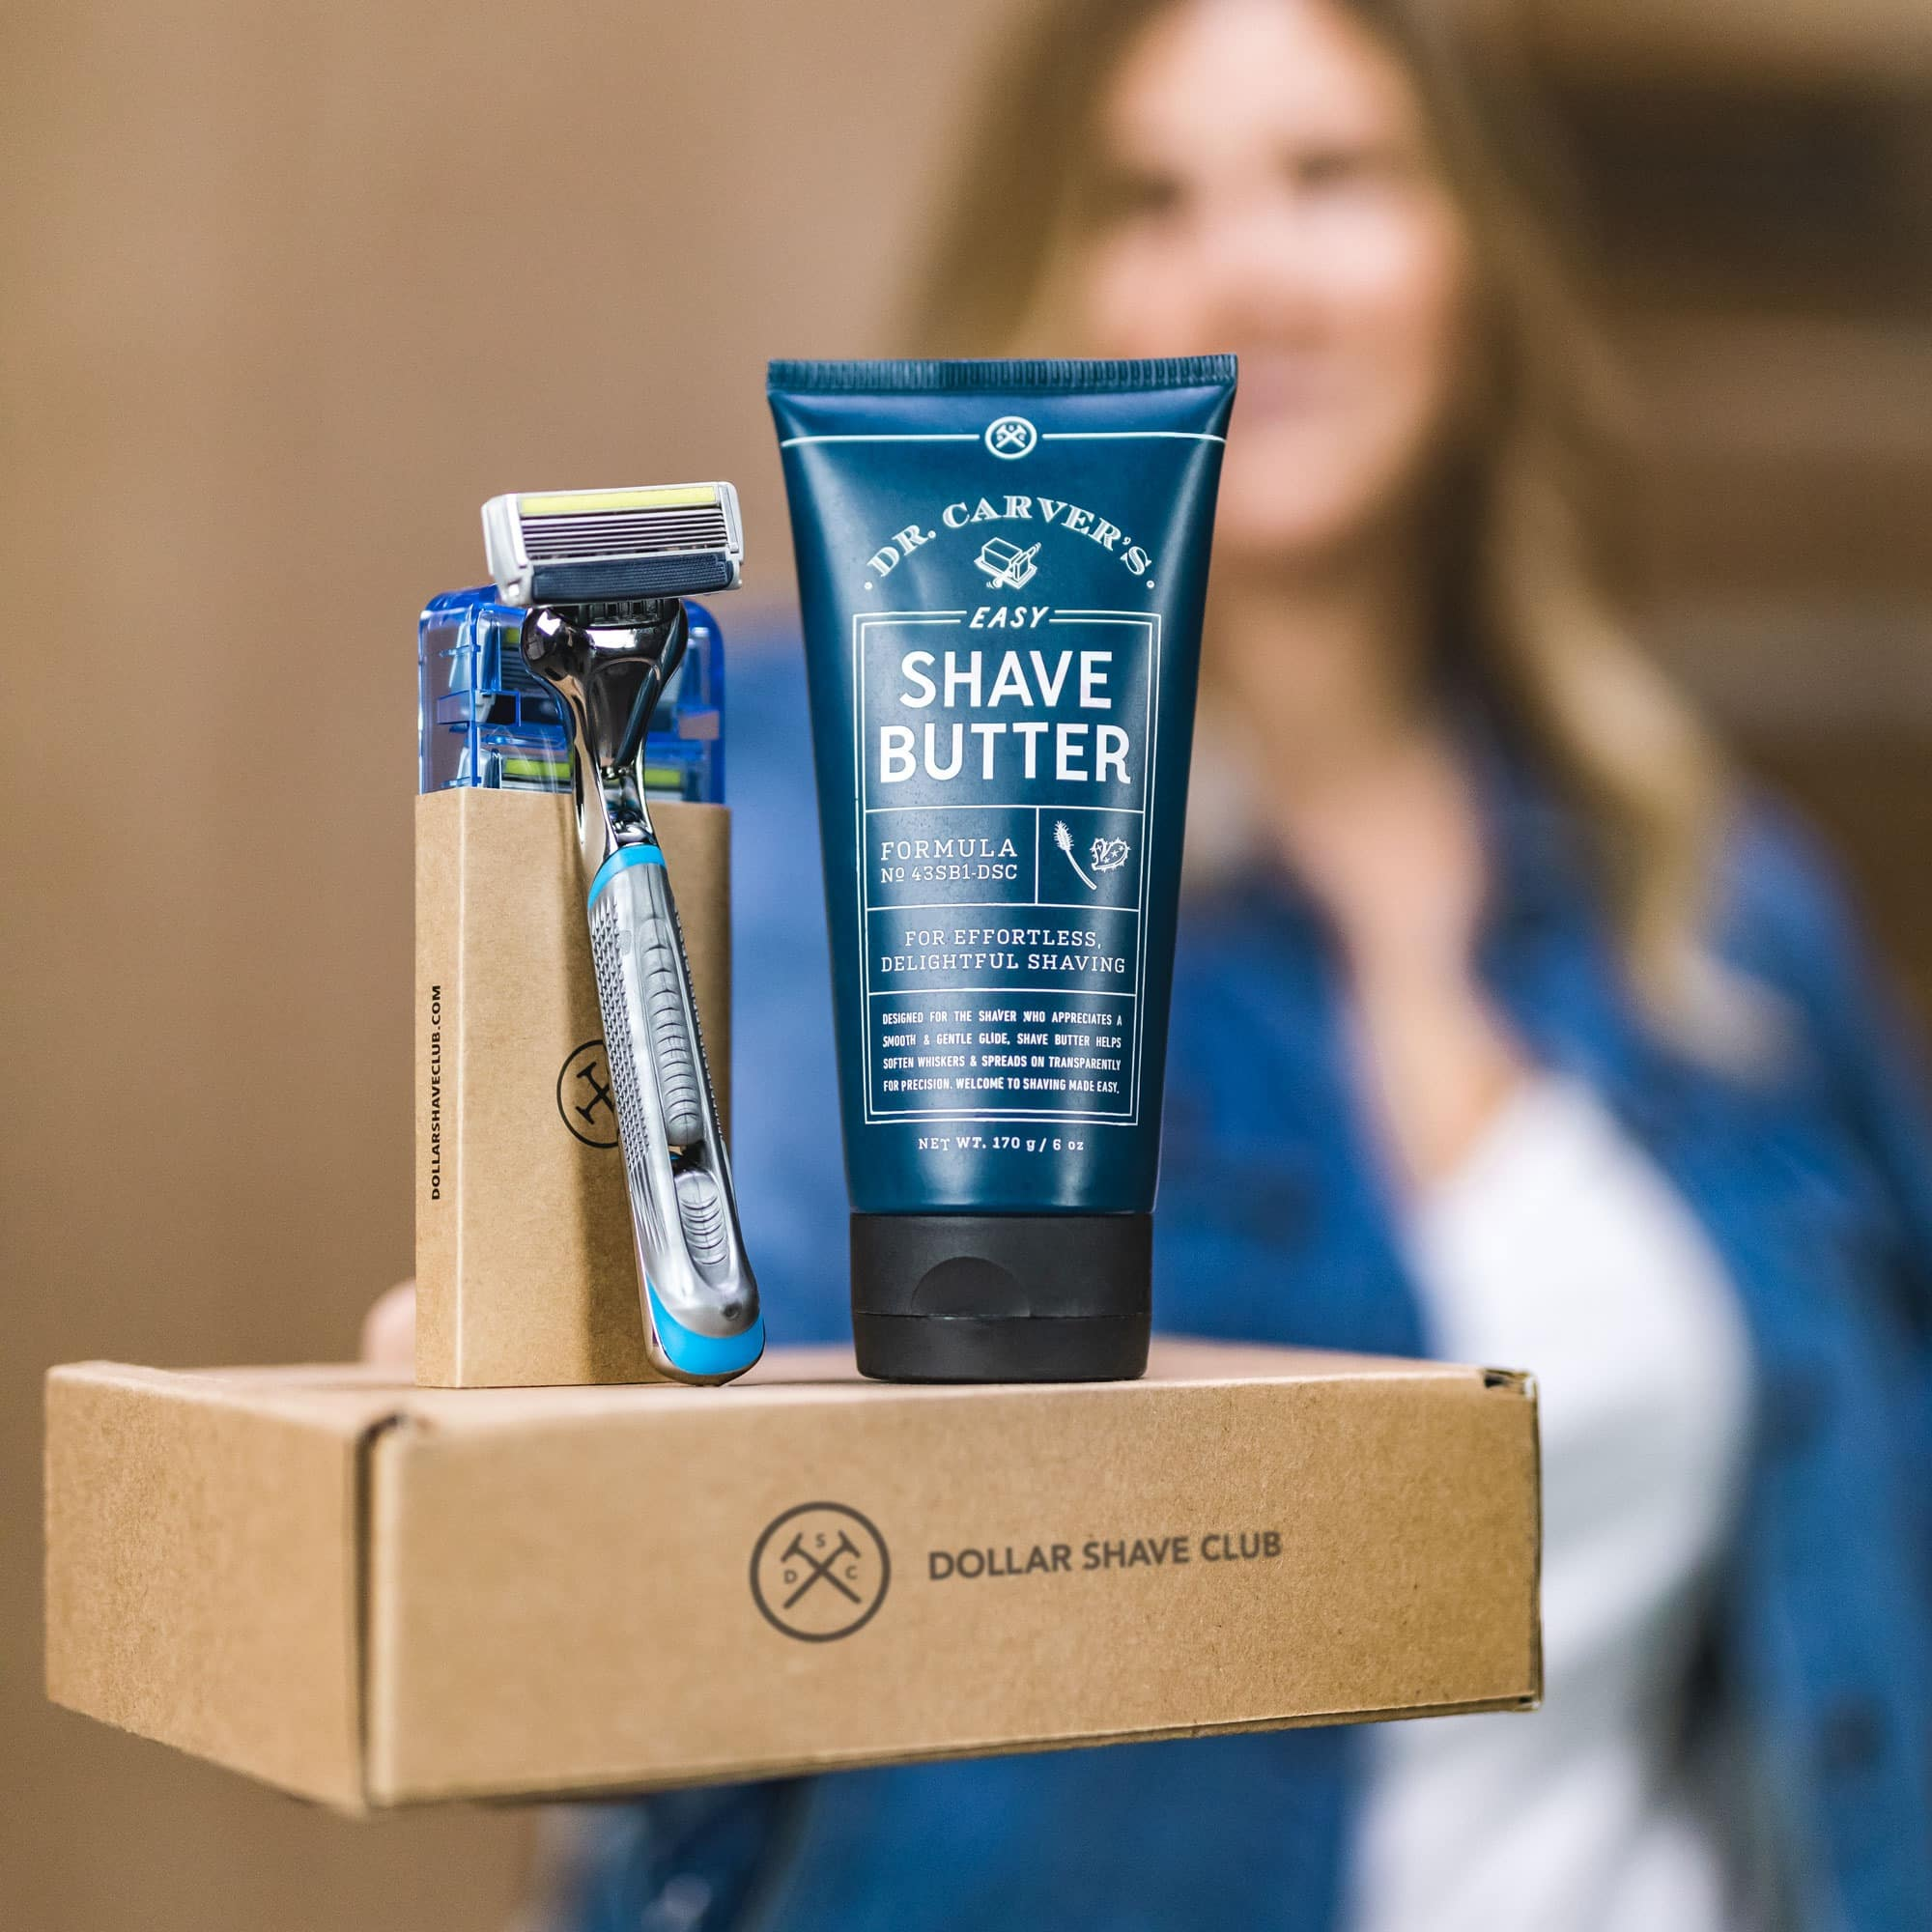 woman holding shave products